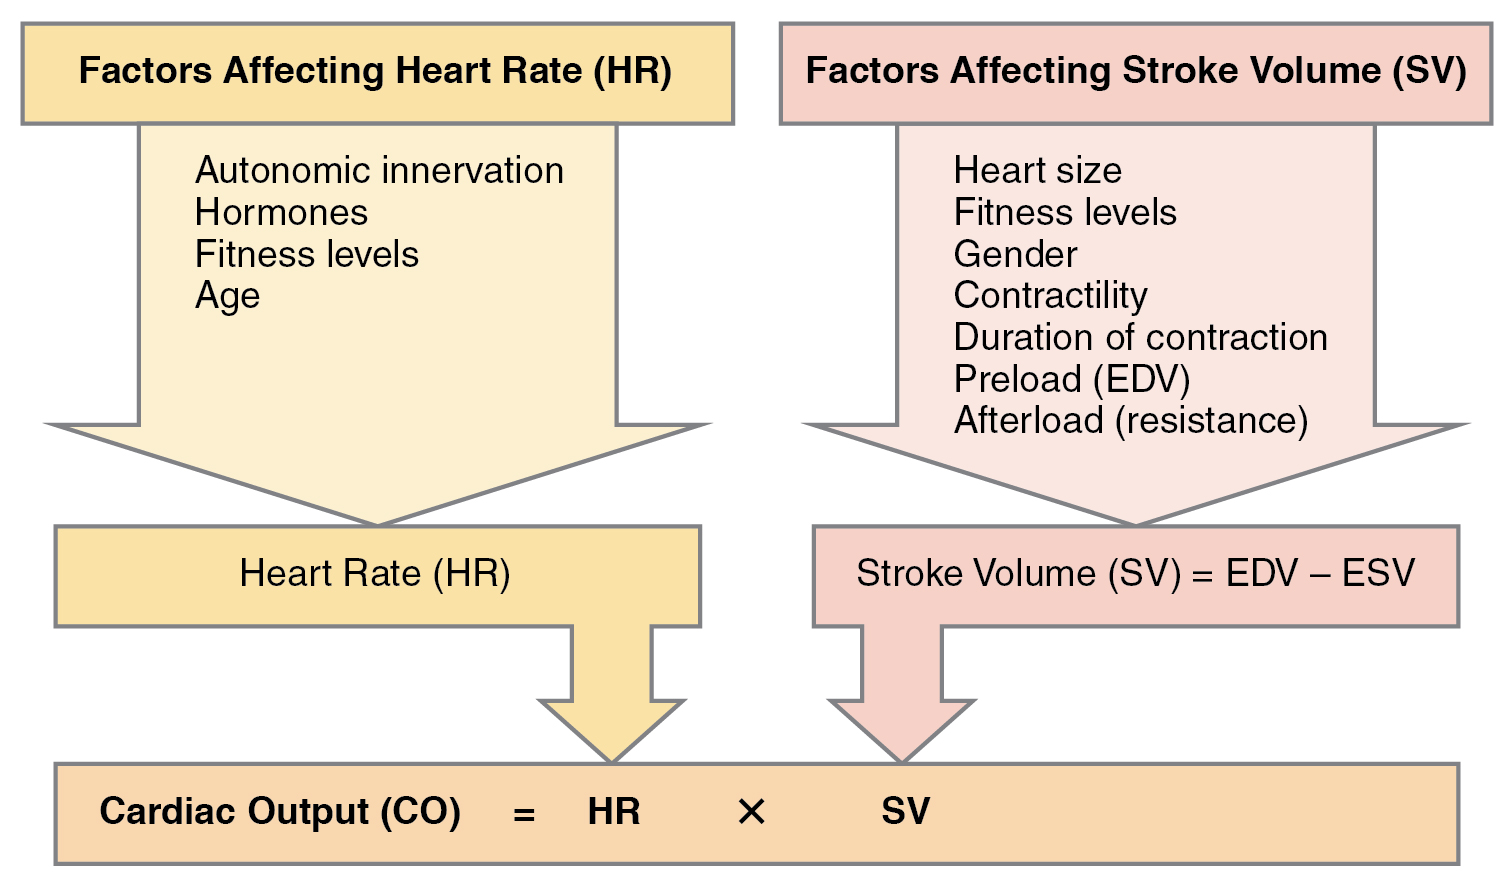 This figure lists the different factors affecting the heart rate and stroke volume. It also shows how they both affect the cardiac output.